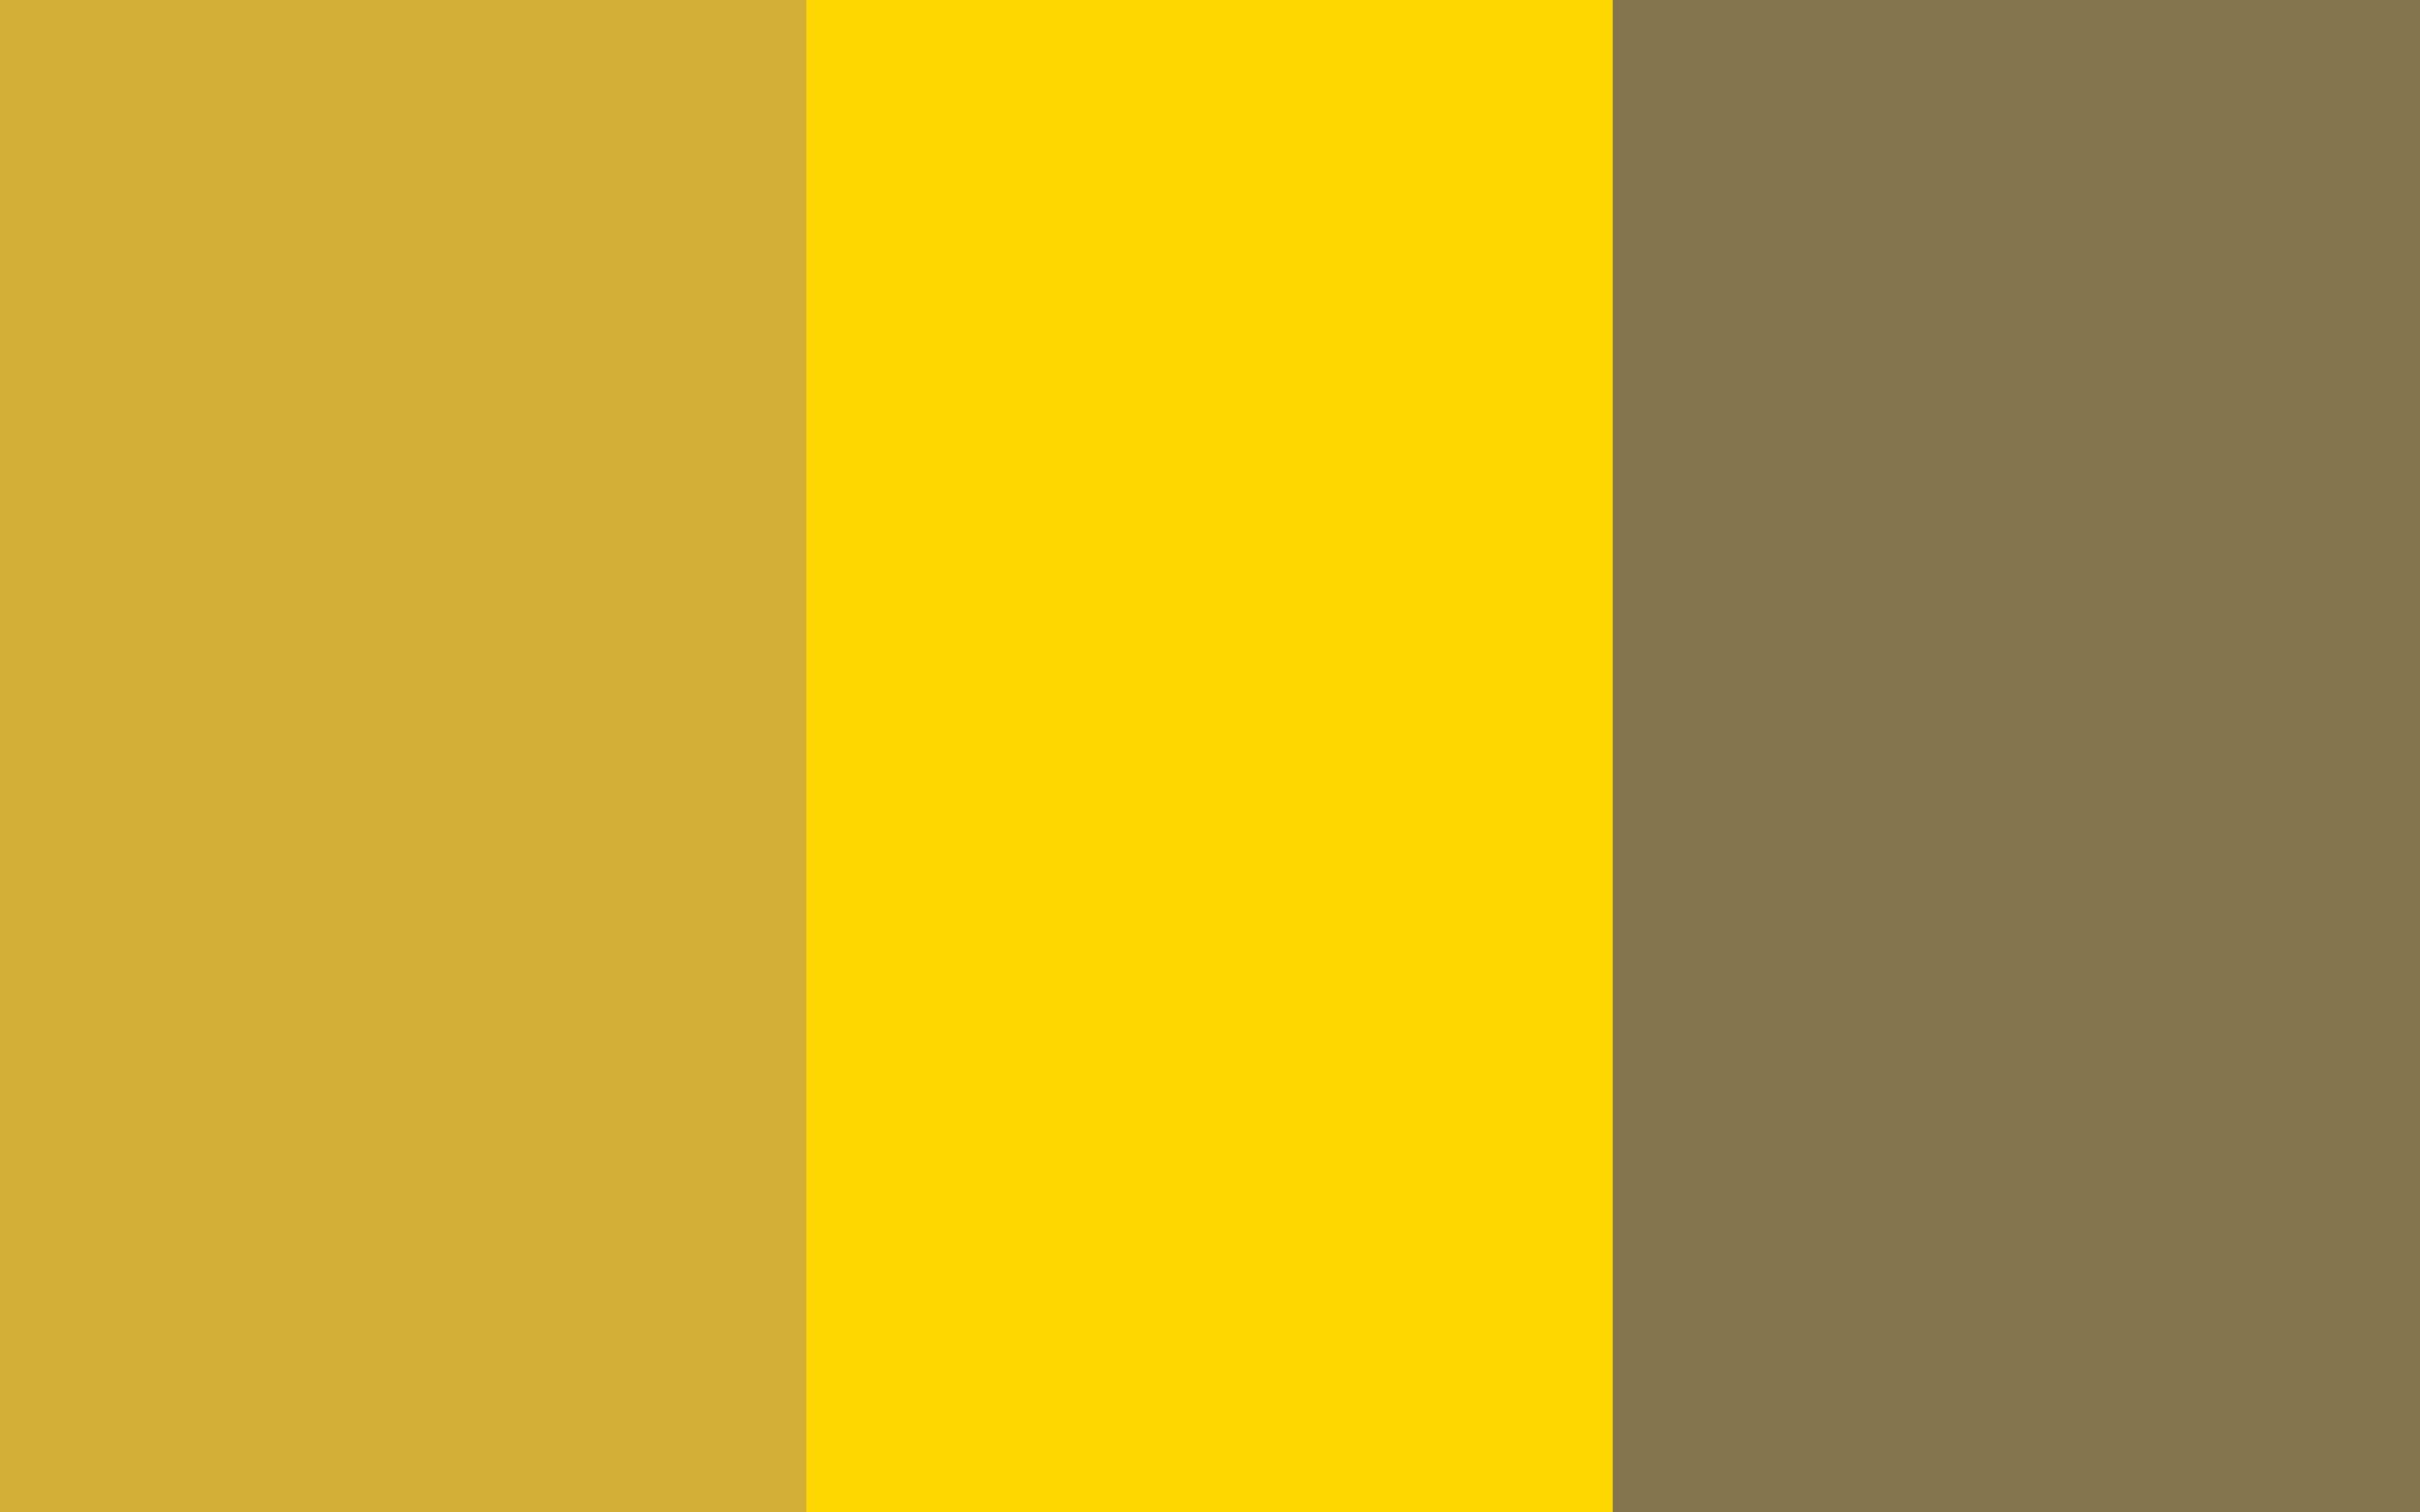 Metallic Gold Color Background Gold metallic gold web golden and gold 2560x1600